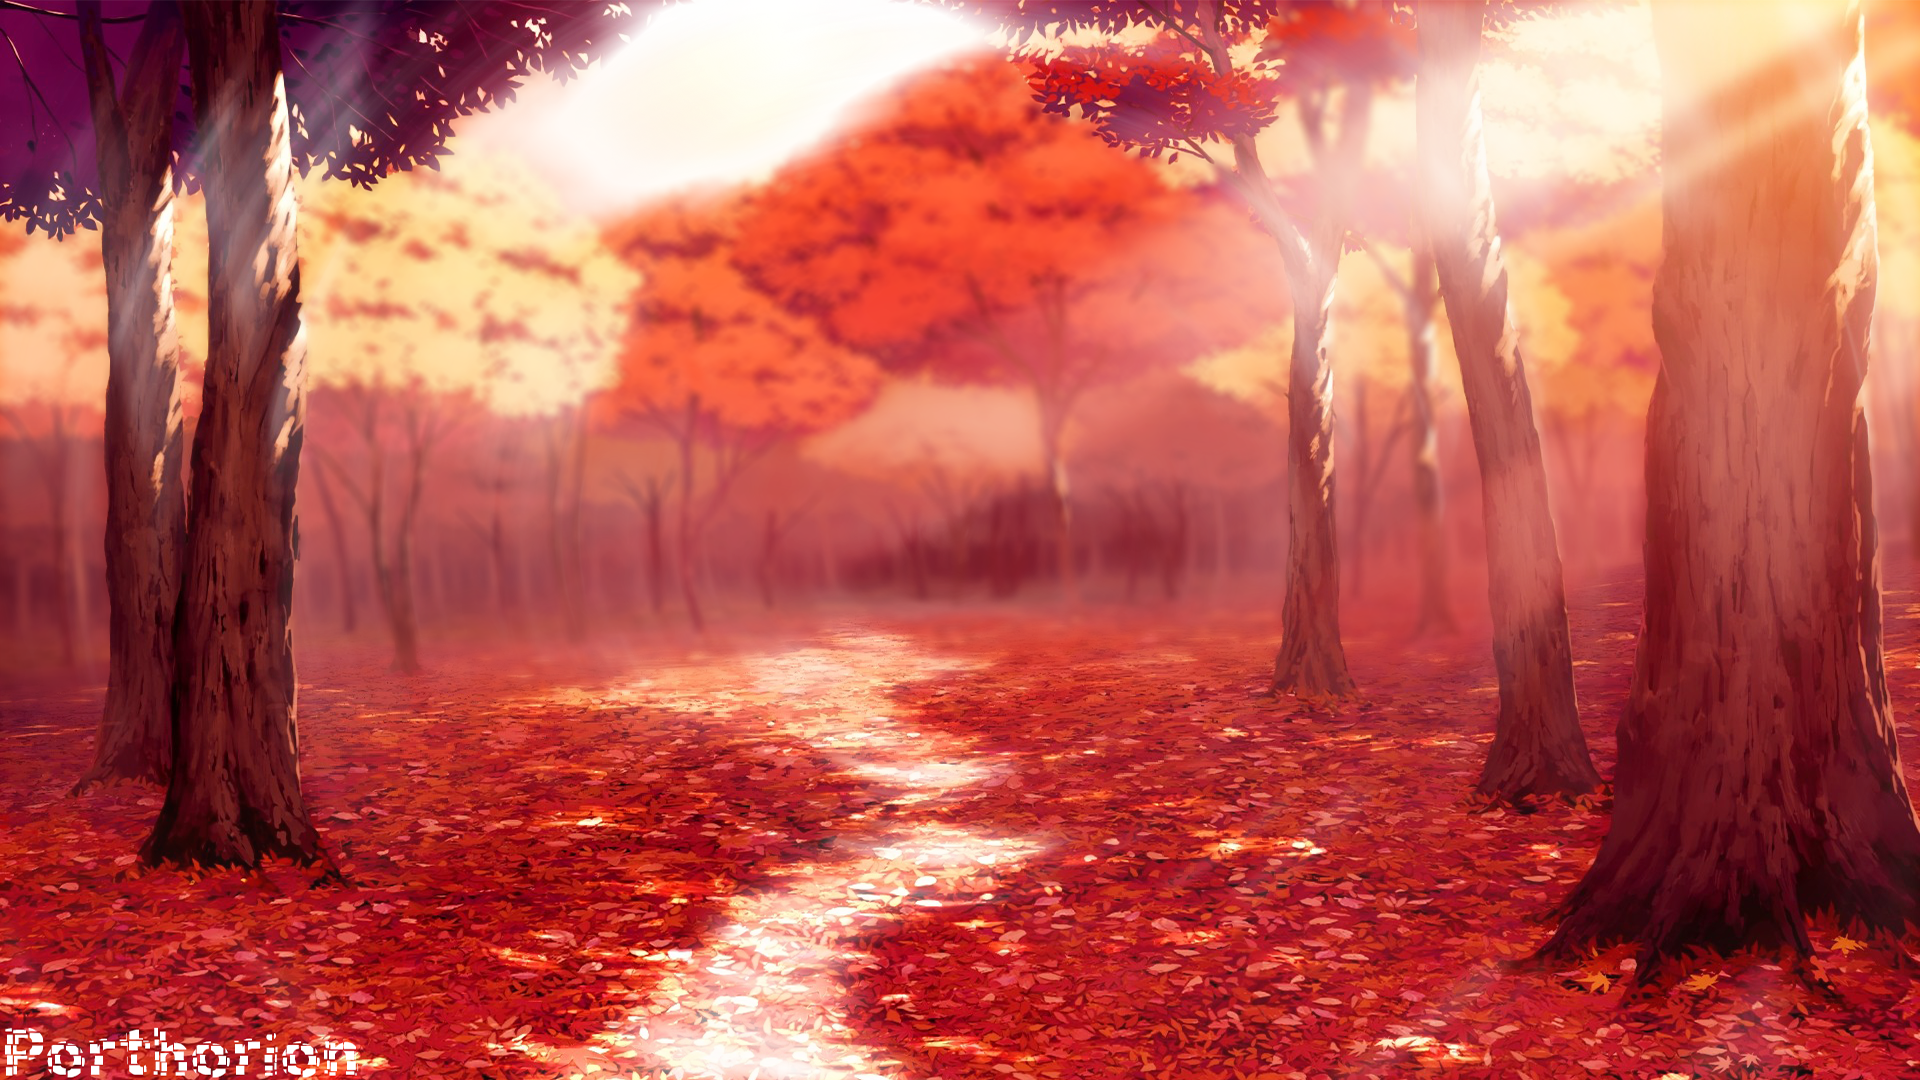 Fall In Love Girl Wallpaper : Anime Fall Wallpapers - WallpaperSafari